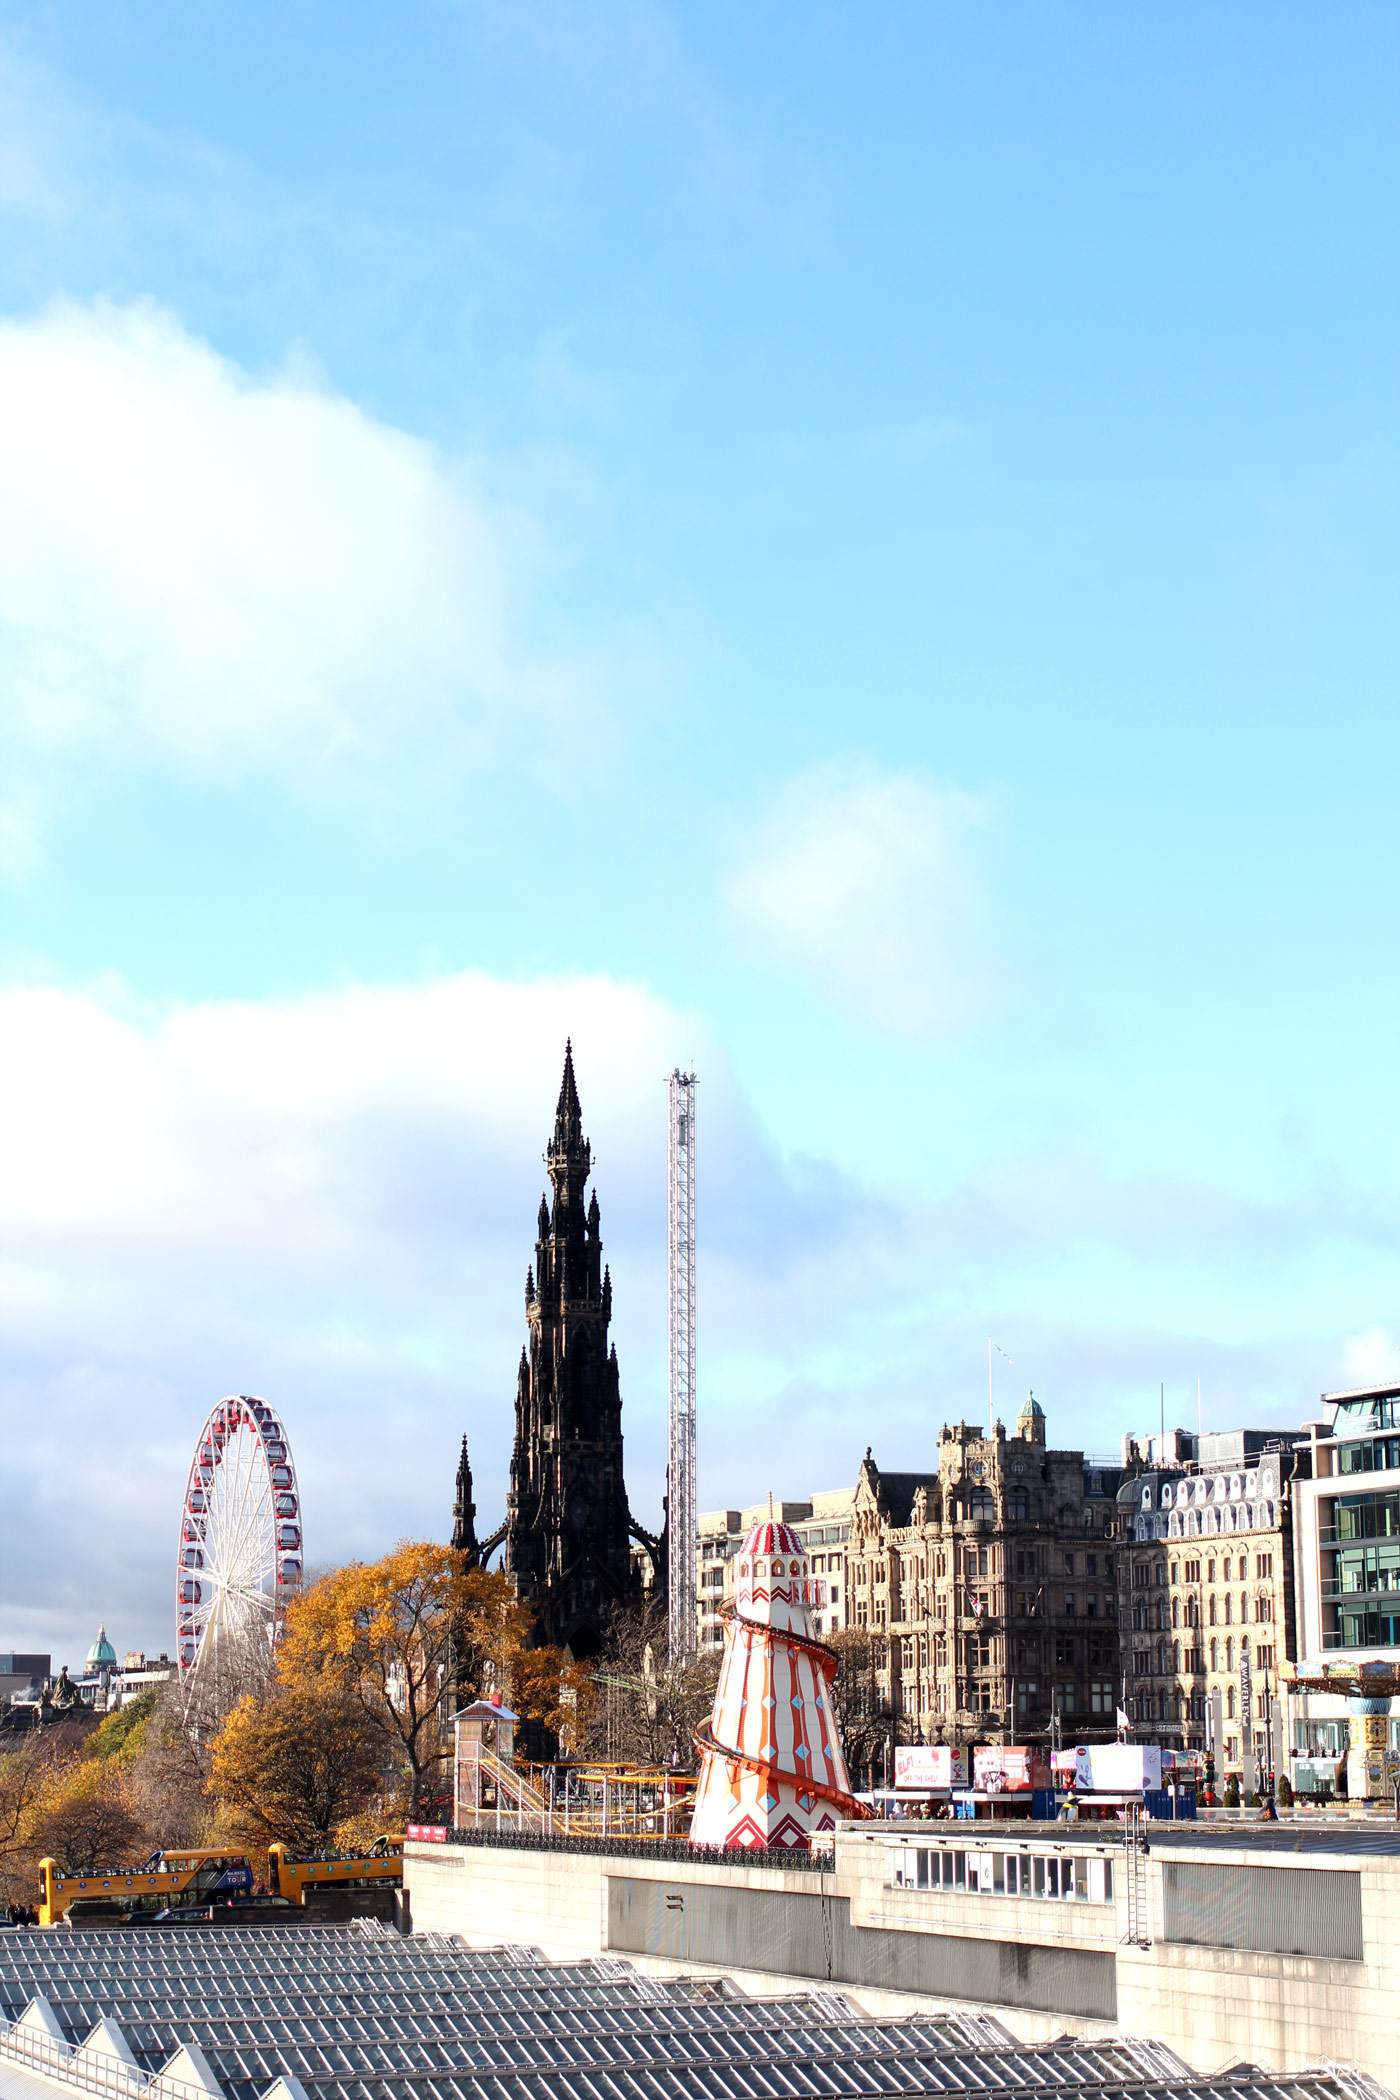 edinburgh-principal-george-st-hotel-12-hours-in-scotland-4